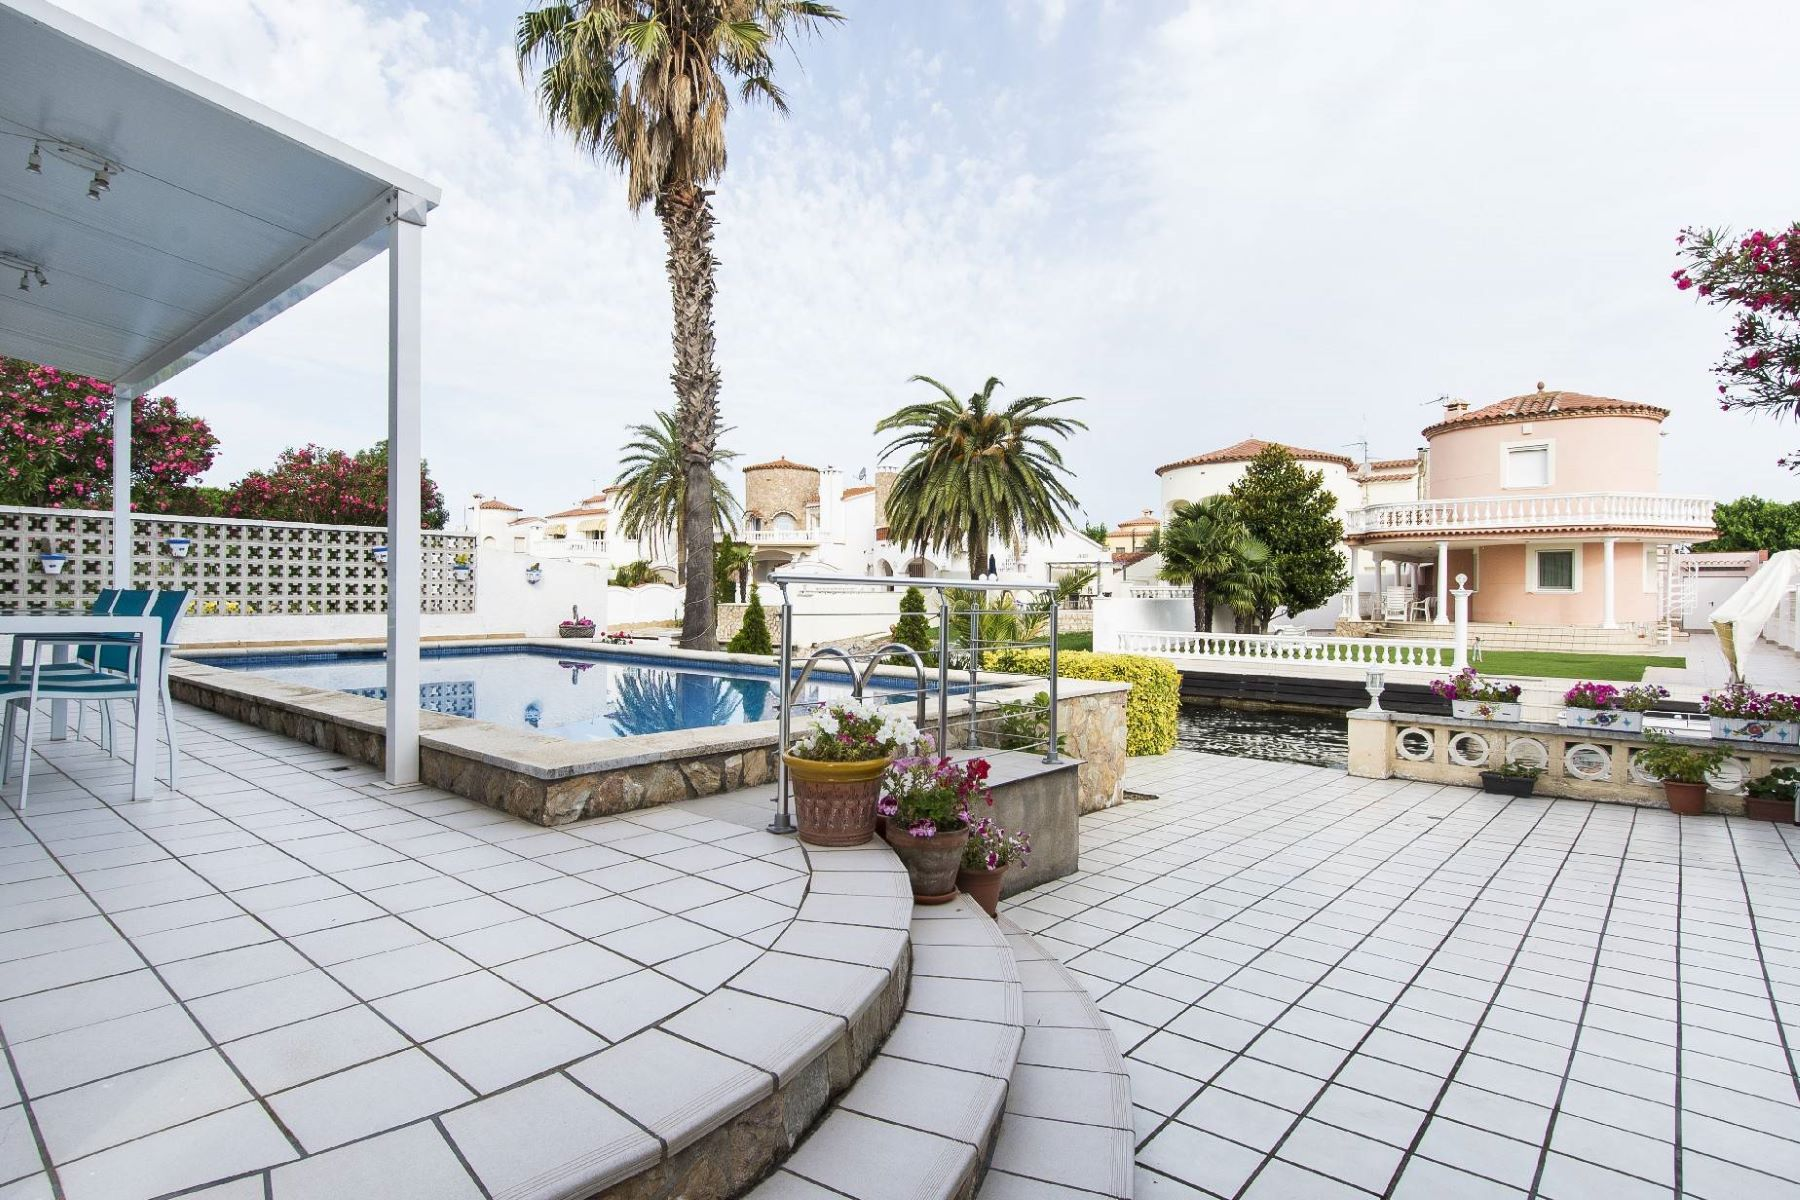 Single Family Home for Sale at House on the canal with 15m mooring Empuriabrava, Costa Brava, 17487 Spain